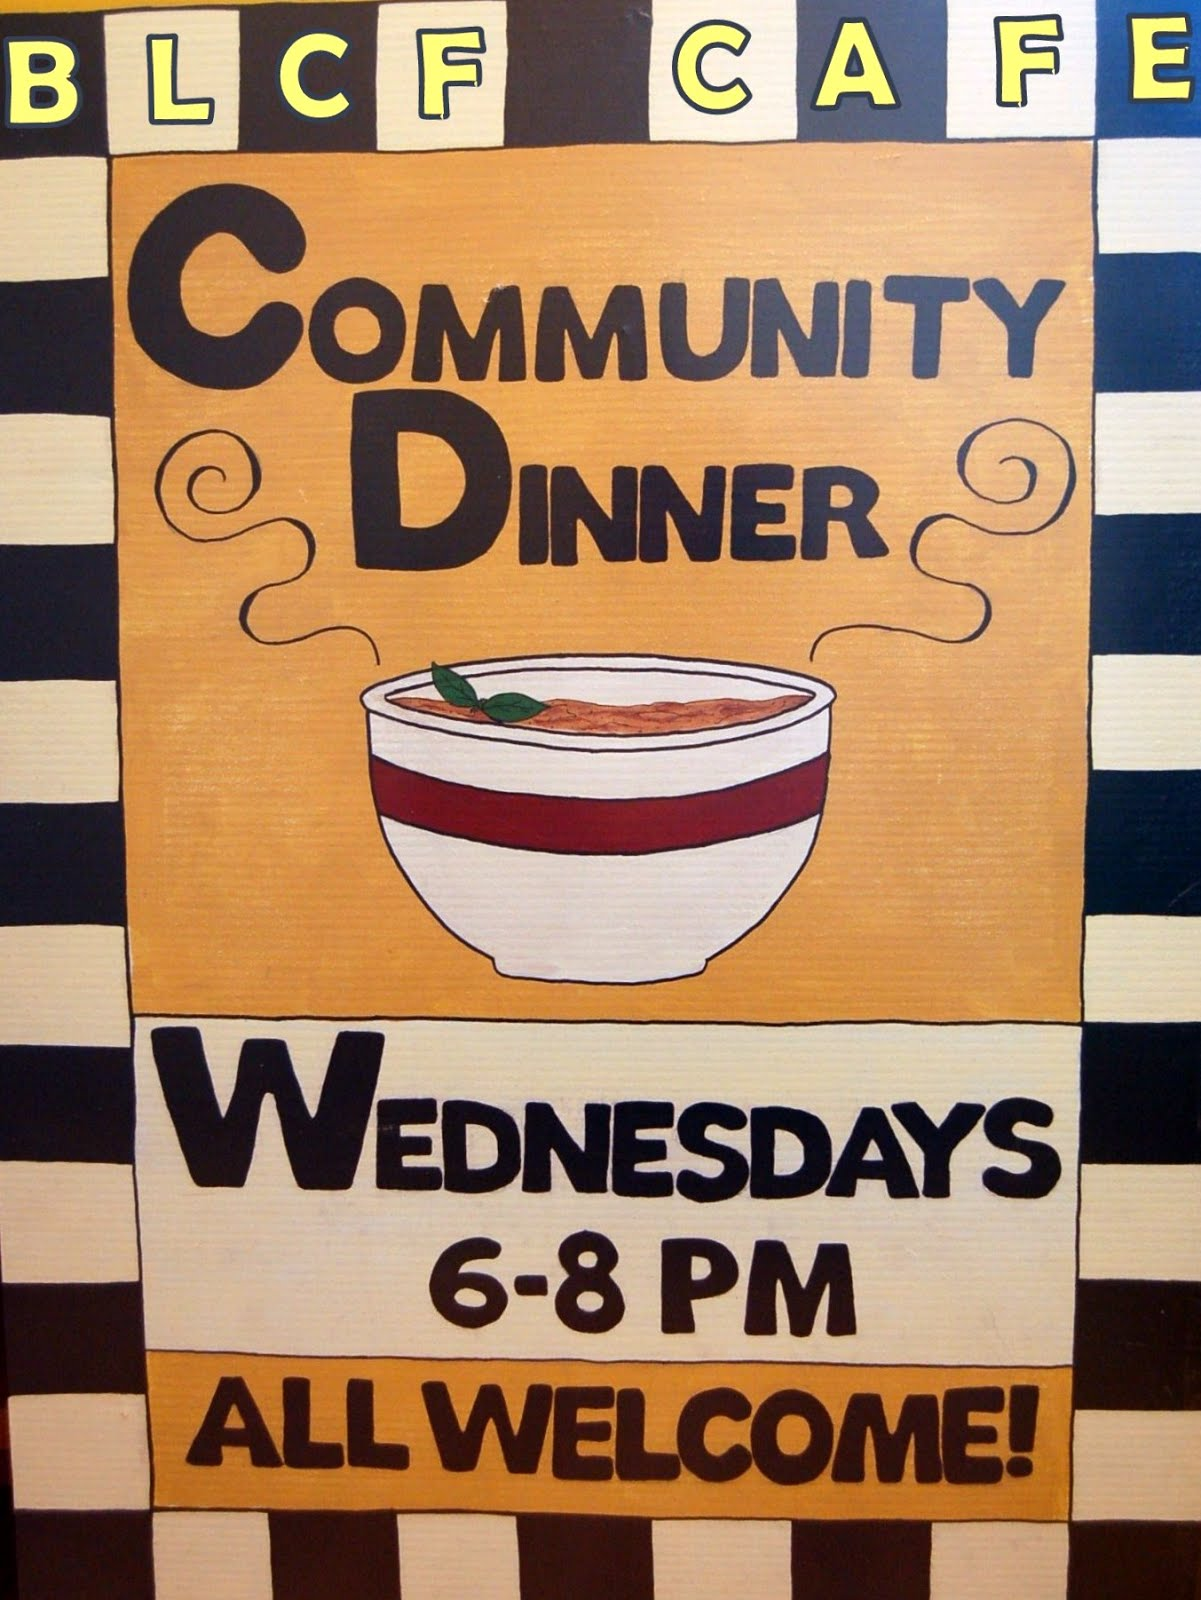 Bloor Lansdowne Community Dinner is now called BLCF Cafe Community Dinner